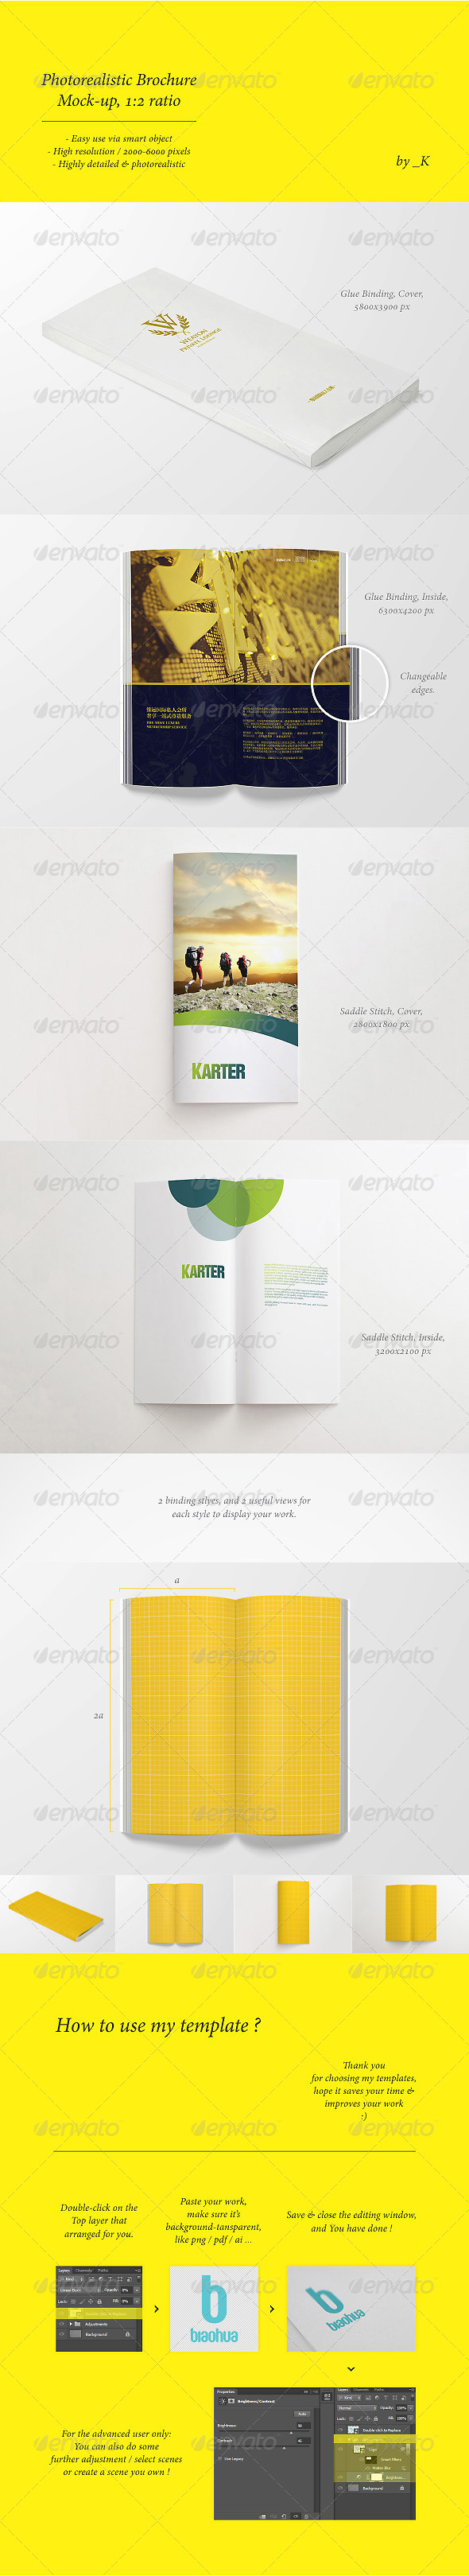 Photorealistic Brochure / Book Mock-Up, 1:2 ratio - Brochures Print